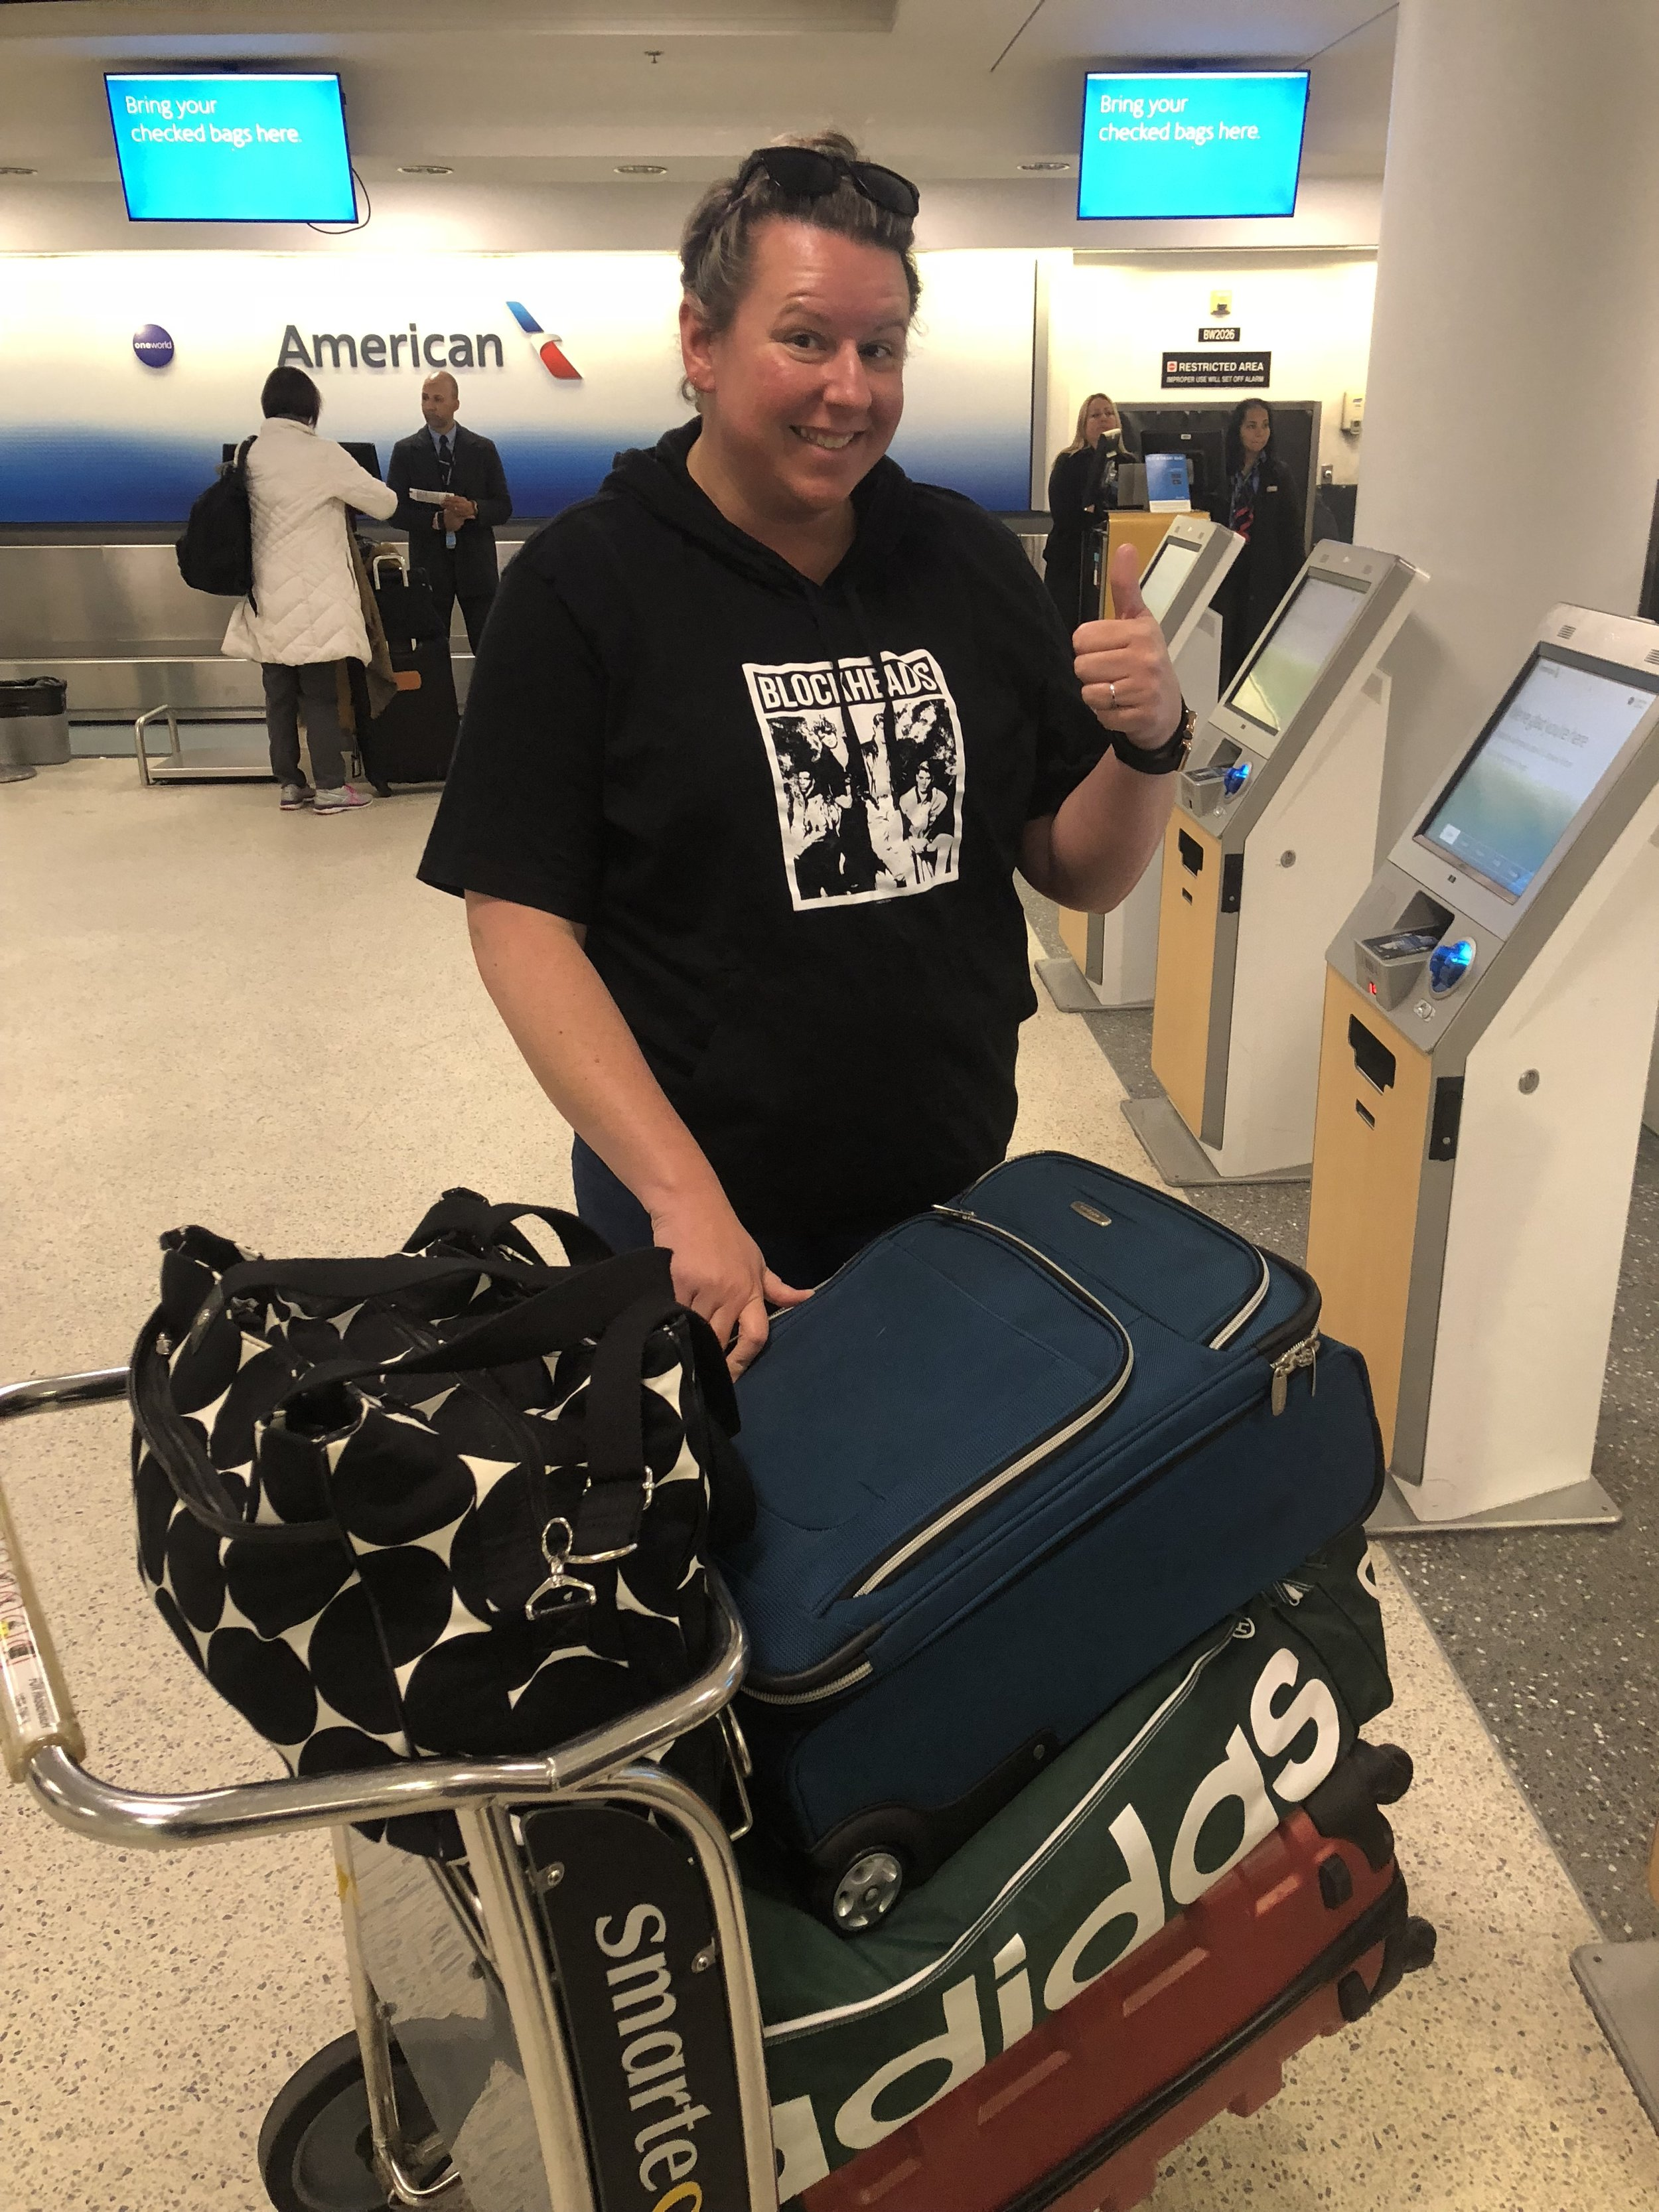 Nikki, sporting her new NKOTB hoodie and her pile of luggage